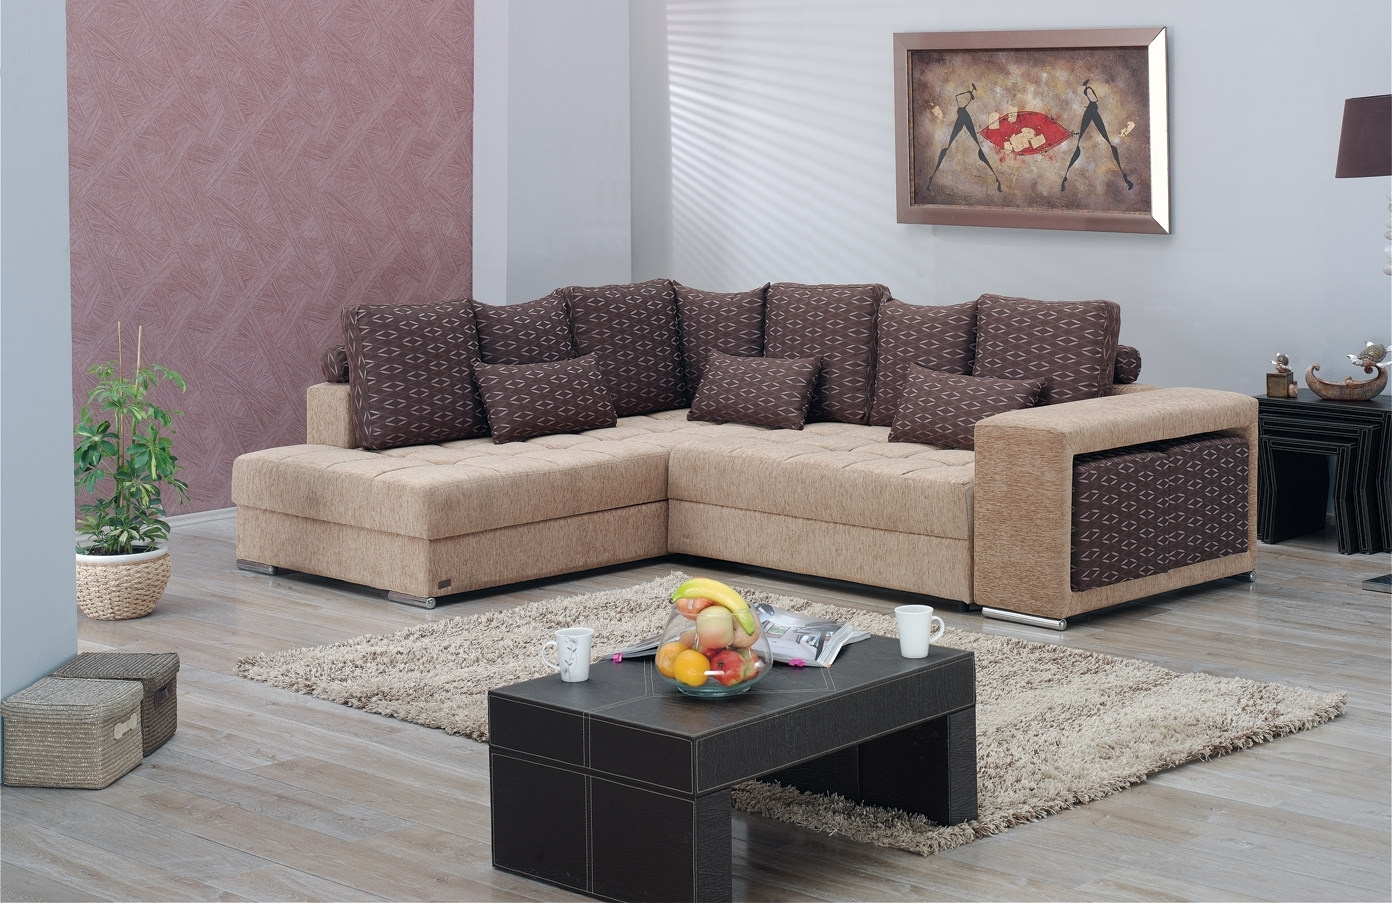 Current Los Angeles Sectional Sofa Setempire Furniture Usa In Los Angeles Sectional Sofas (View 6 of 20)